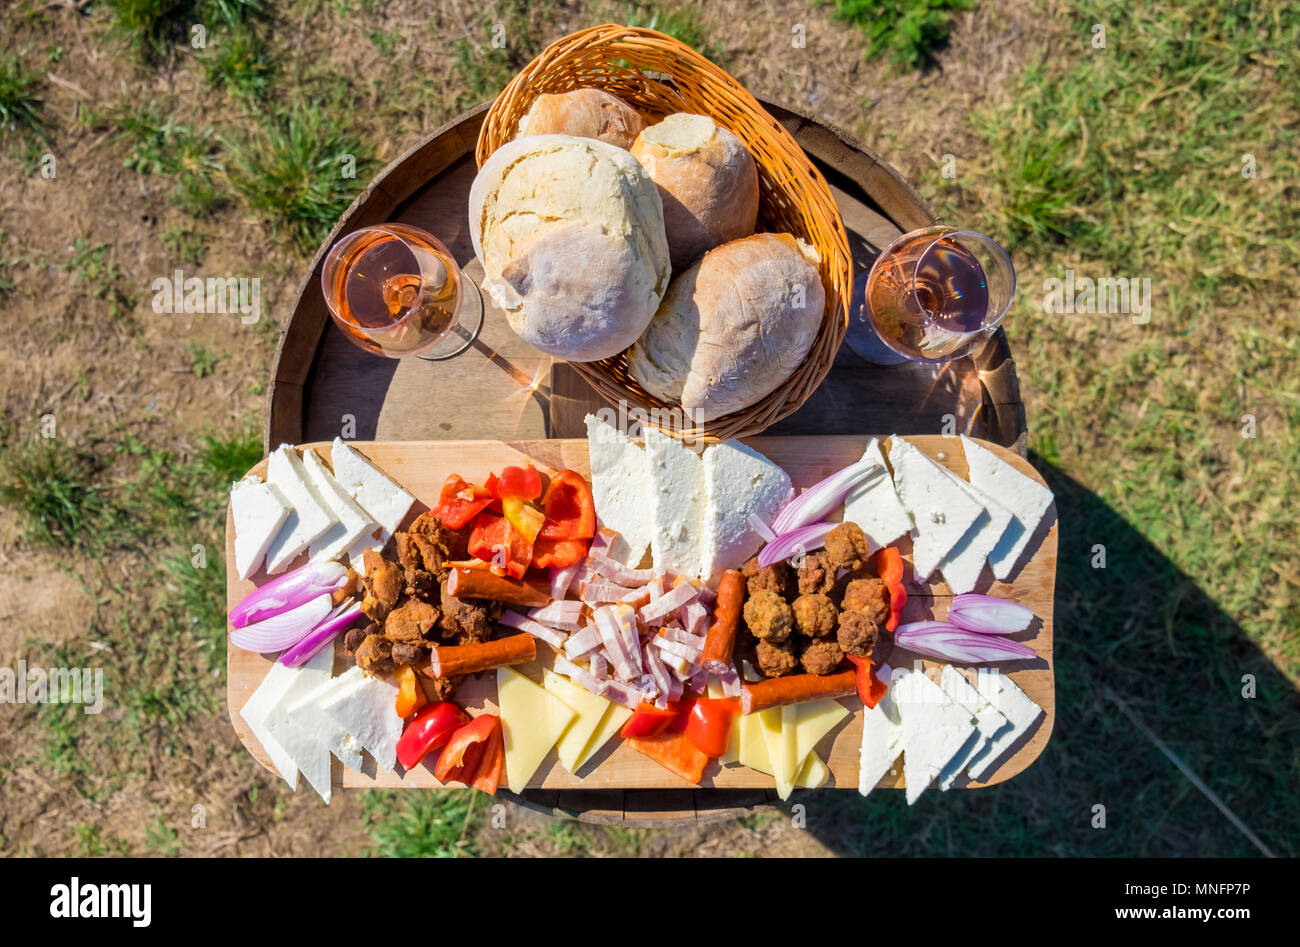 Food plate with traditional Eastern Europe food: onions, bread, cheese, sausages, meatballs and red wine in glass, in nature - Stock Image